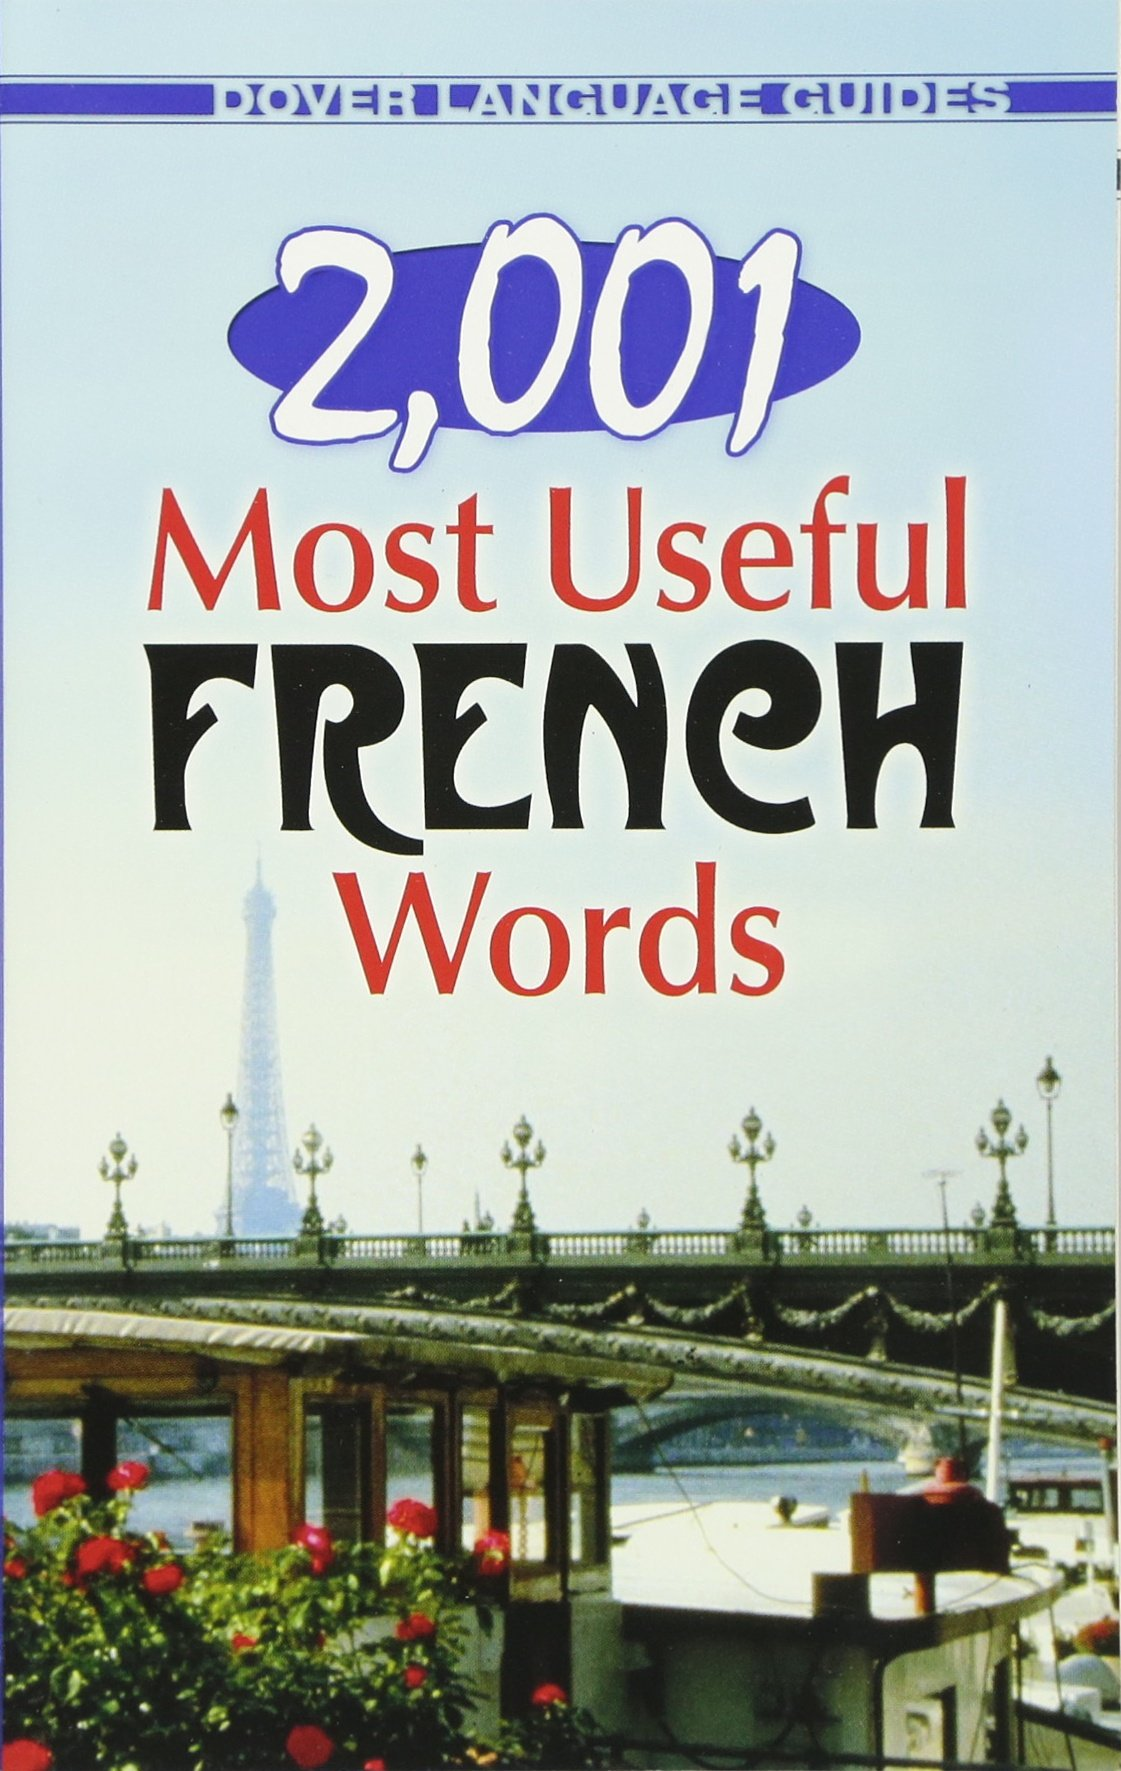 2, 001 Most Useful French Words (Dover Language Guides French) (English and  French Edition): Heather McCoy: 9780486476155: Amazon.com: Books